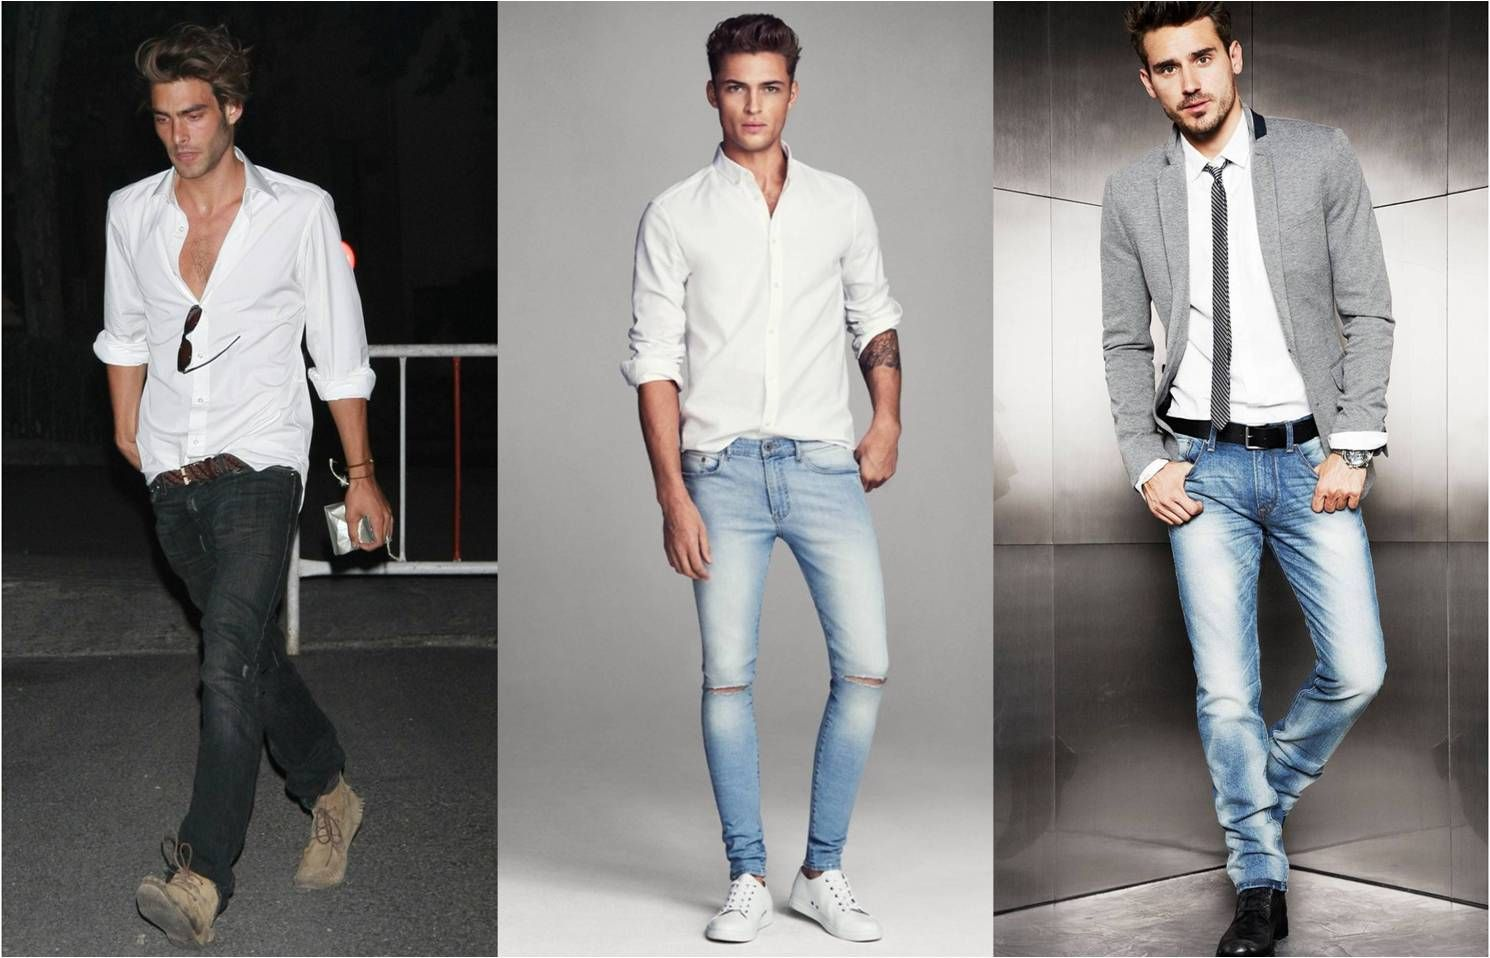 white shirts and jeans | Fashion | Pinterest | Shirts, White ...